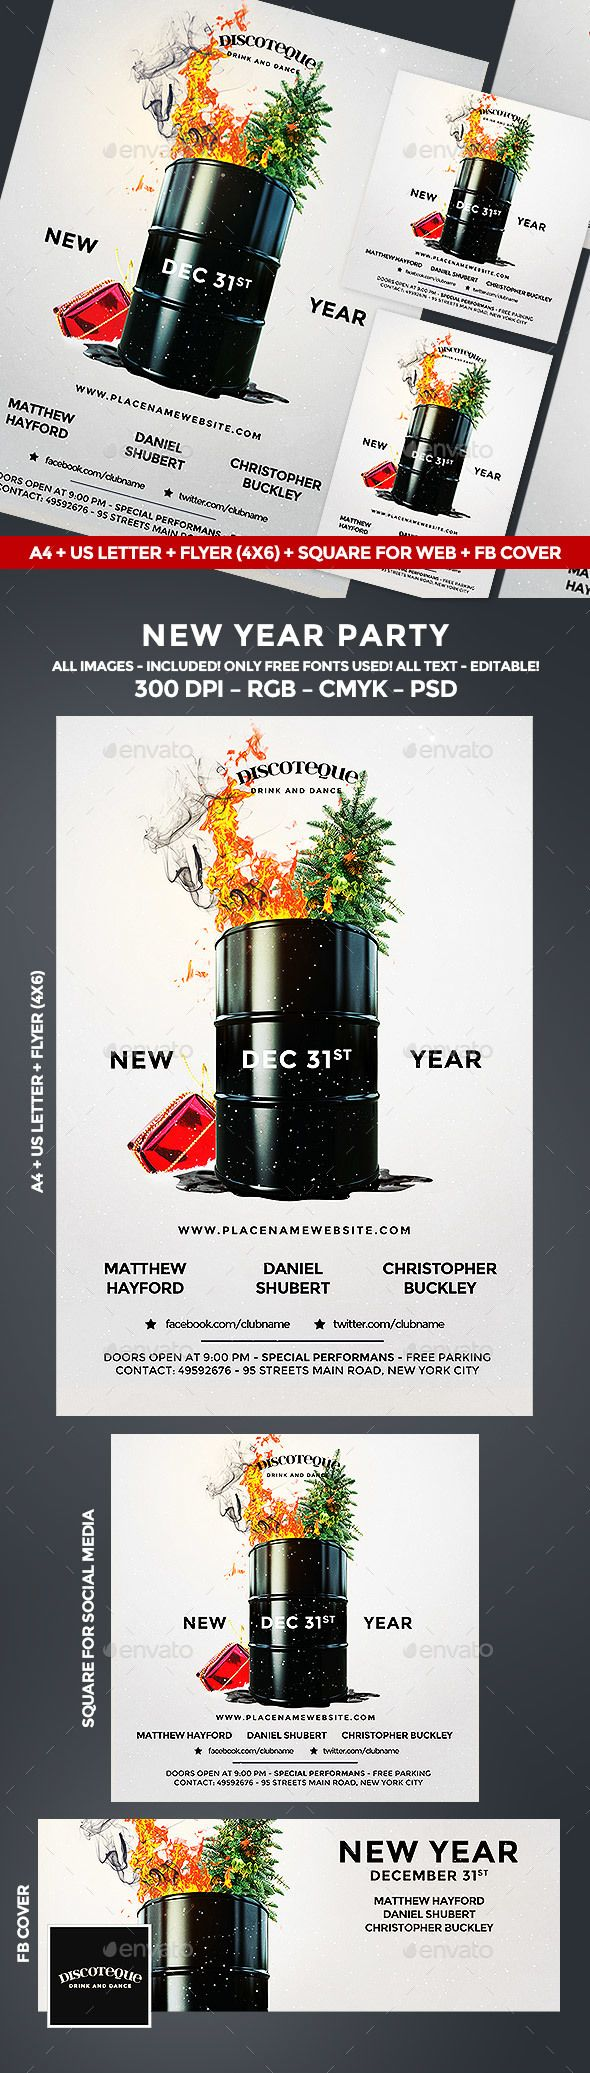 New Year Flyer — PSD Template #inspiration #party #new year • Download ➝ https://graphicriver.net/item/new-year-flyer/18614893?ref=pxcr